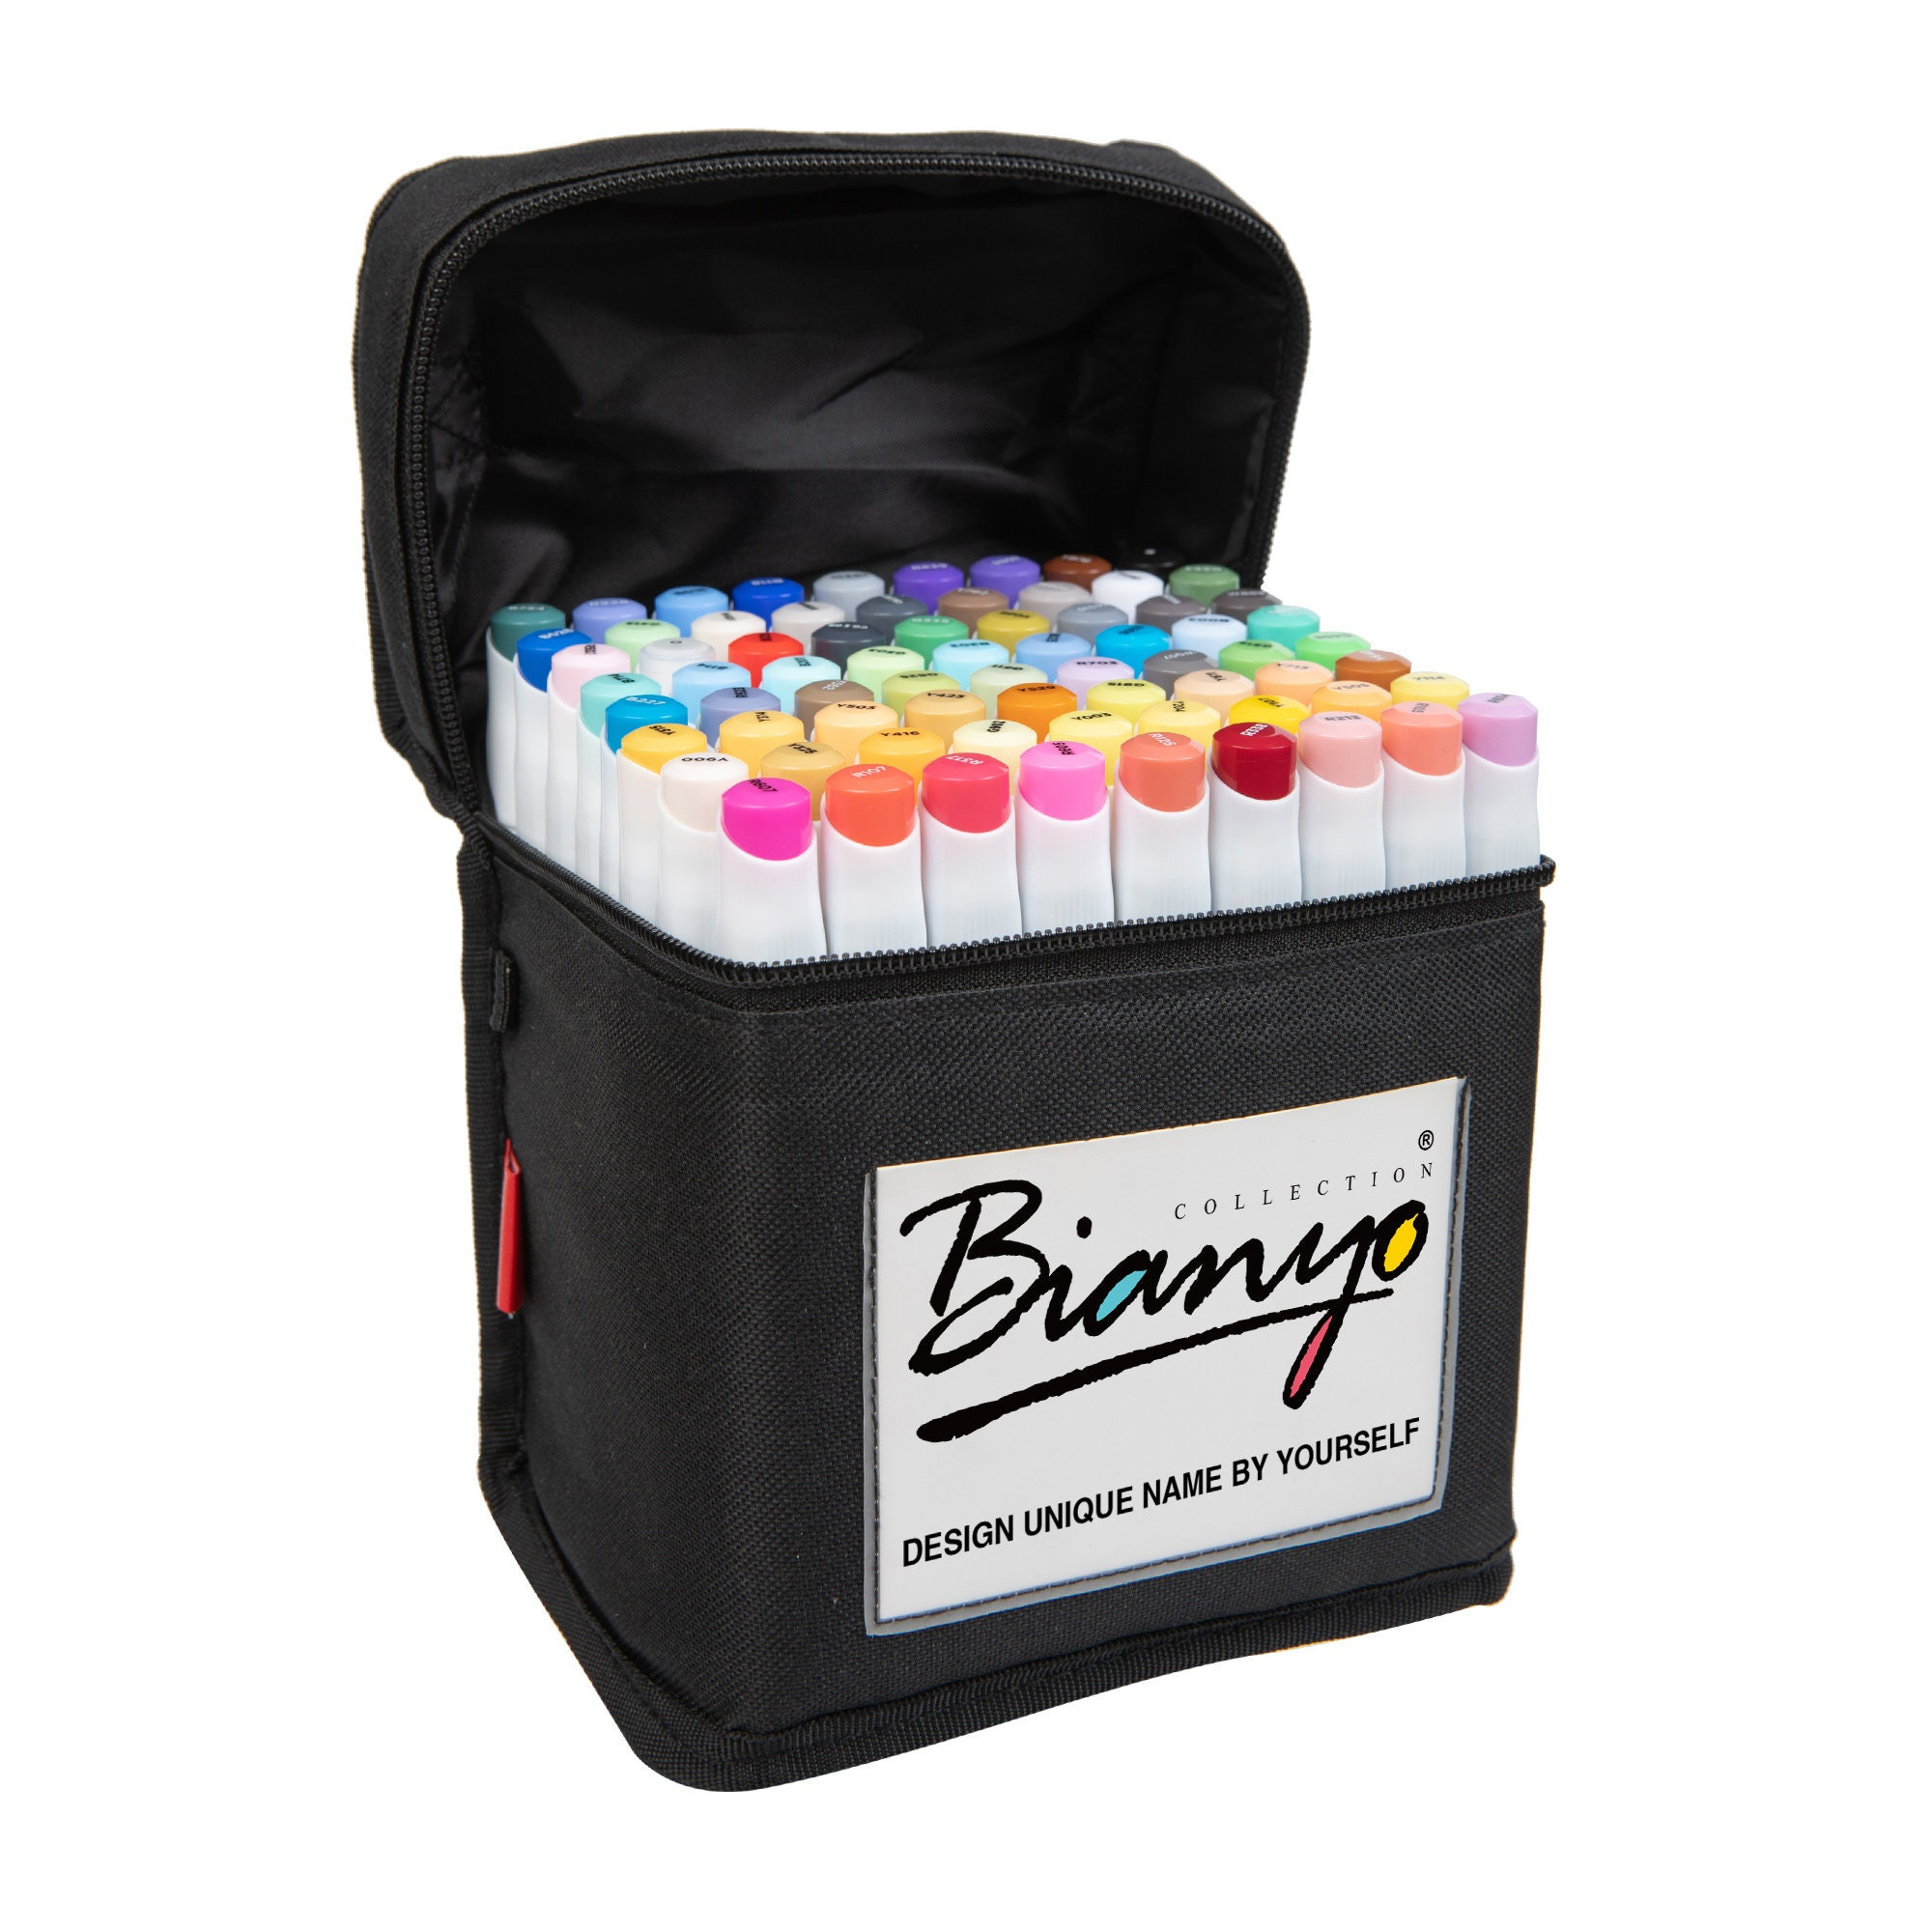 Bianyo 24 Dual Tip Watercolor Markers for Adult/&Kids Coloring books